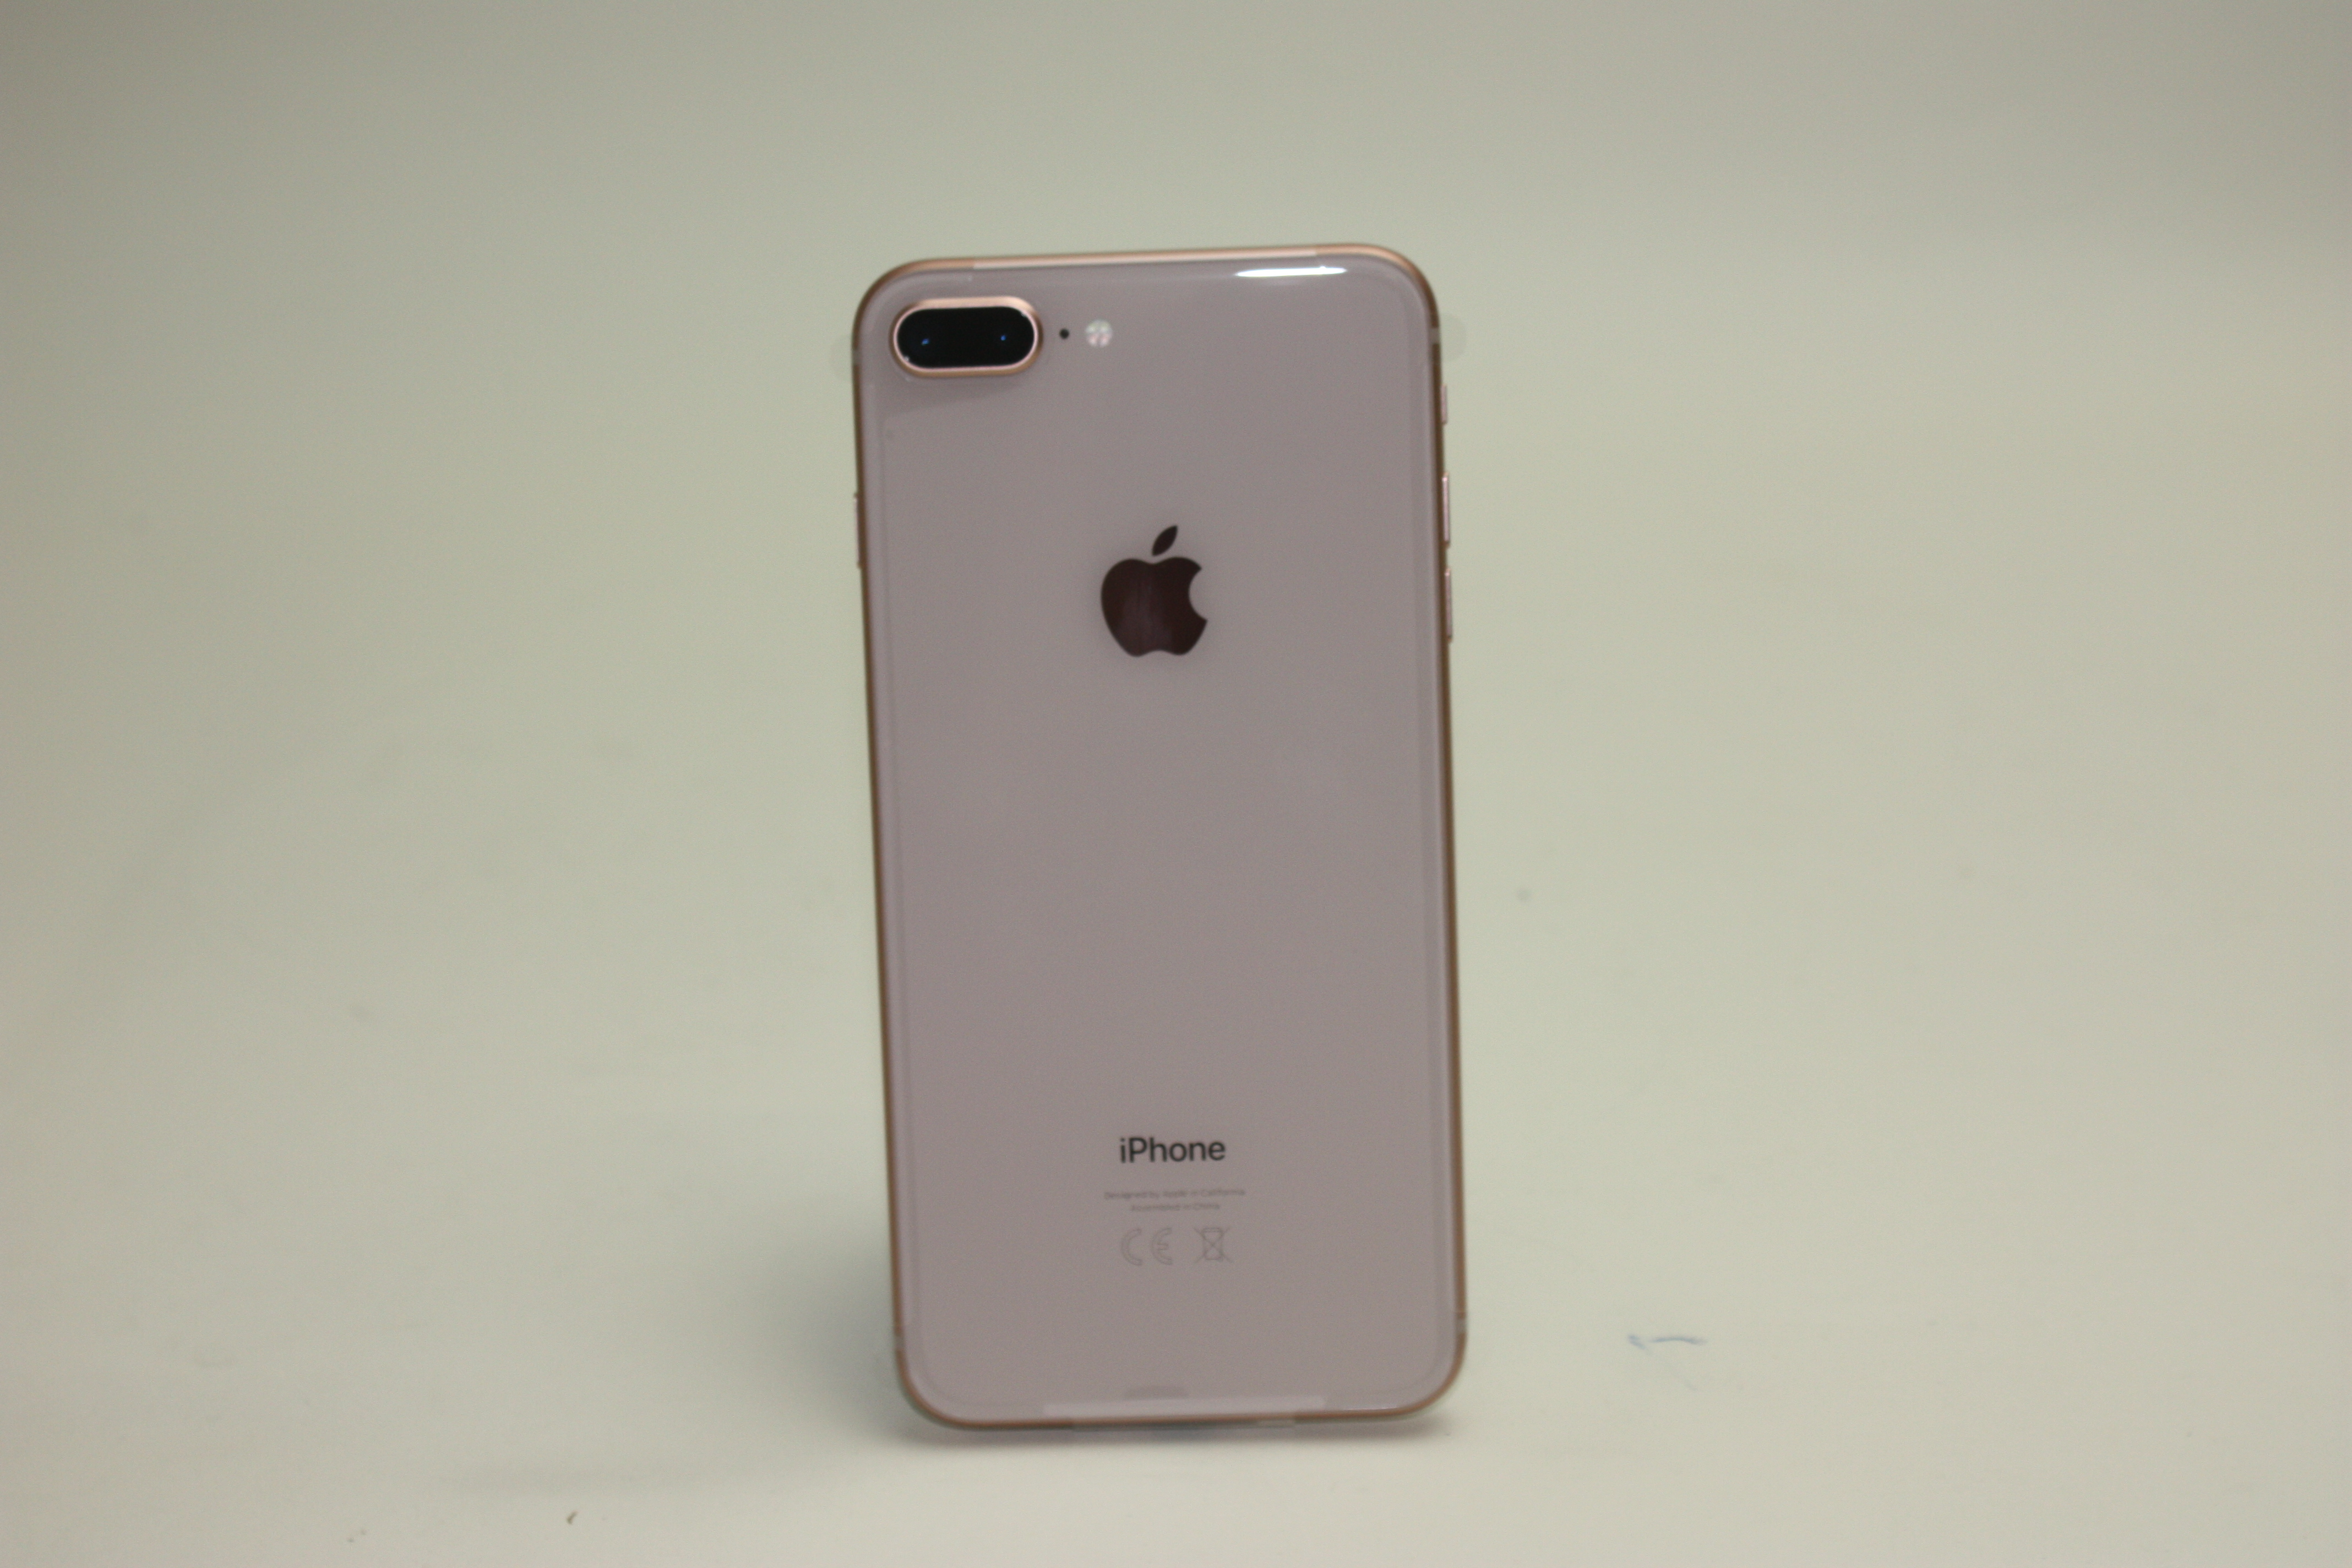 iPhone 8plus, 64 GB, Rose Gold, Product age: 2 week, image 2